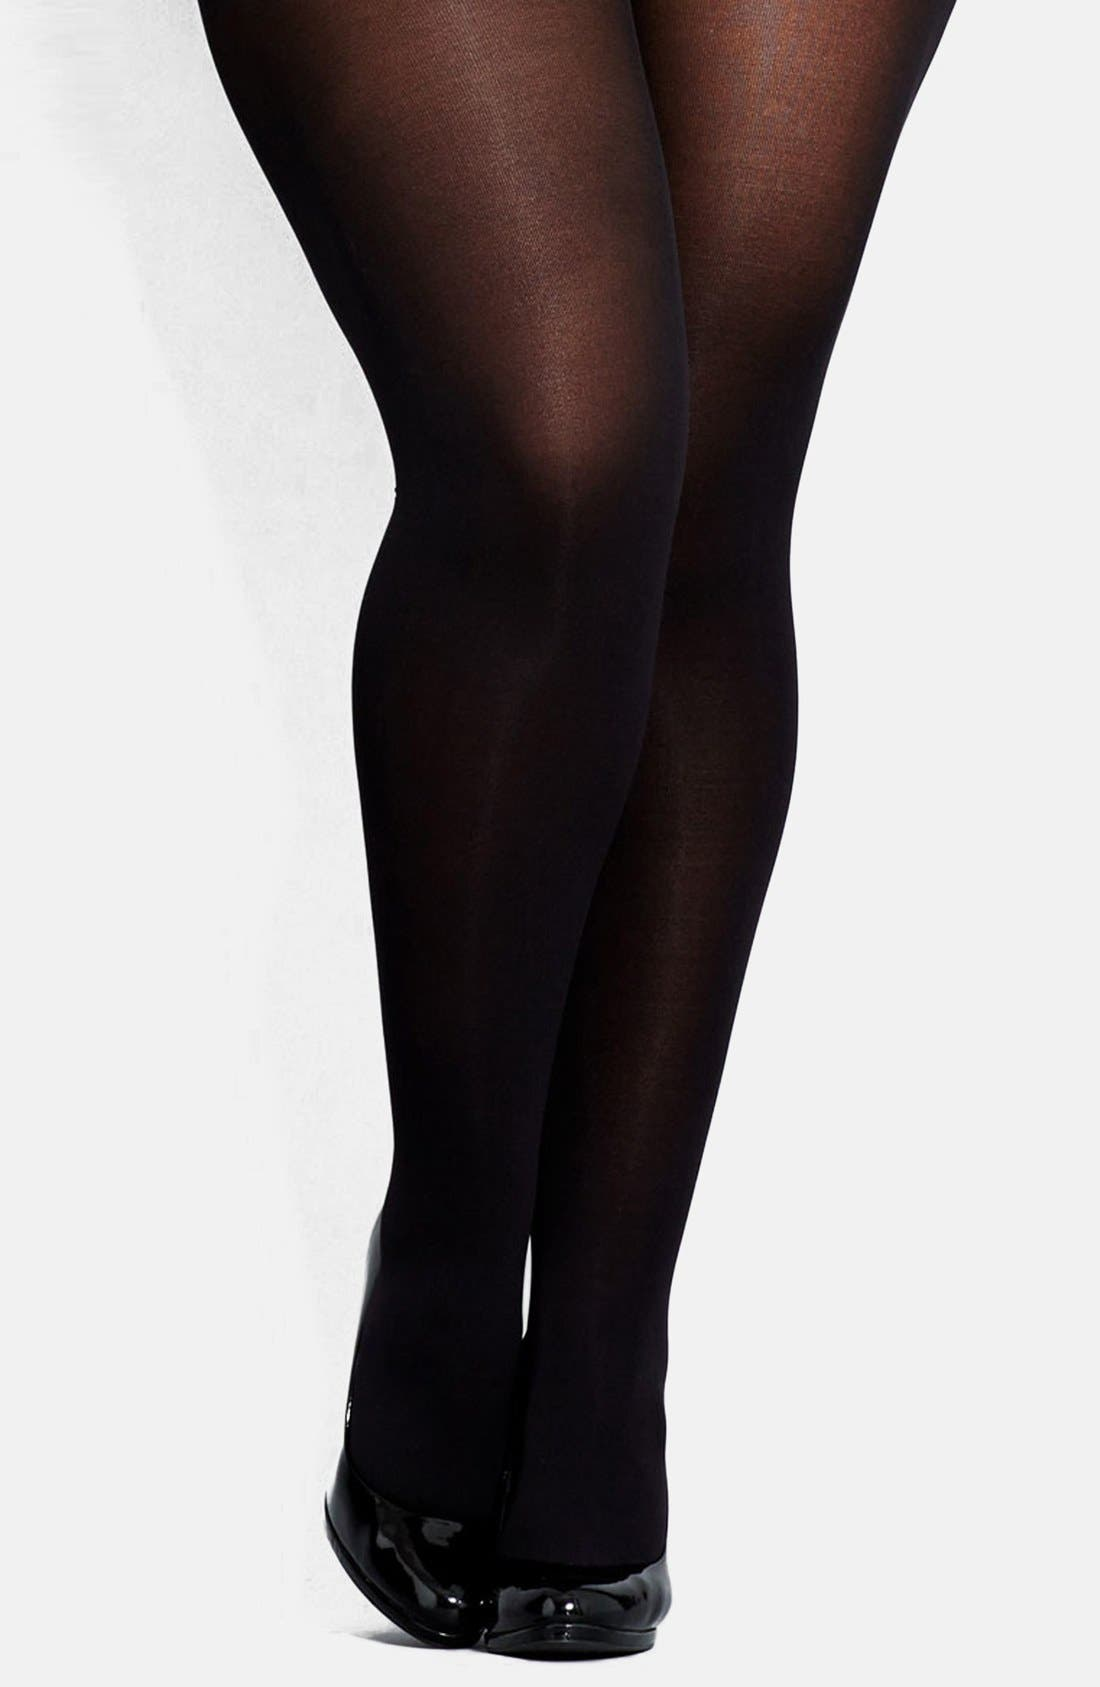 Alternate Image 1 Selected - City Chic 80 Denier Black Opaque Tights (Plus Size)